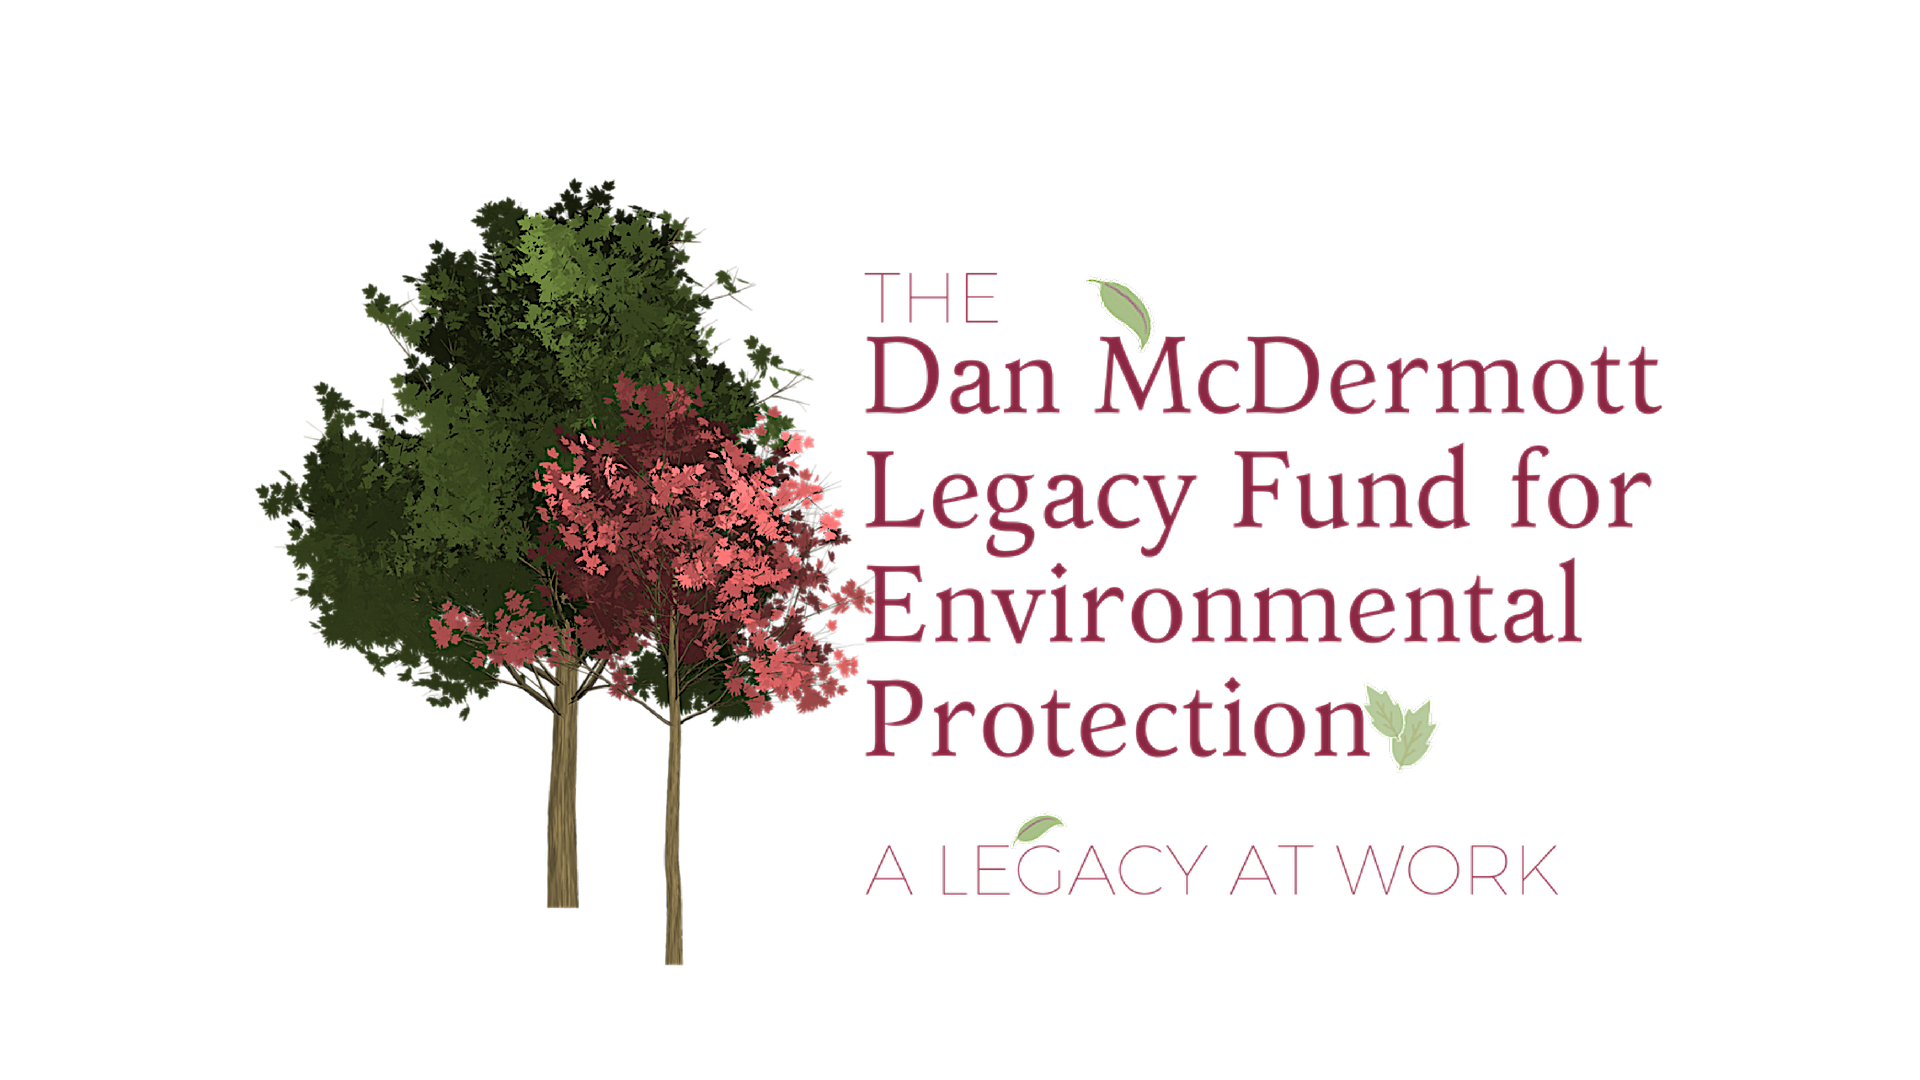 The Dan McDermott Legacy Fund for Environmental Protection